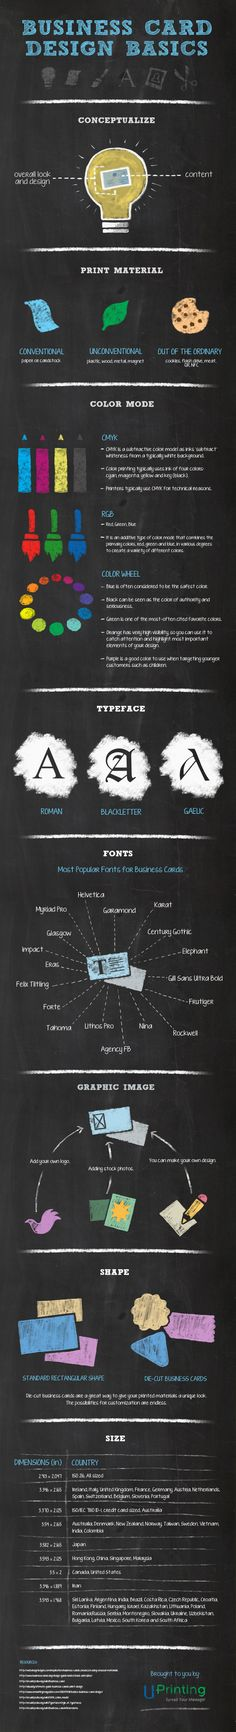 Business Card Design: The Simple And Effective Approach #infographic